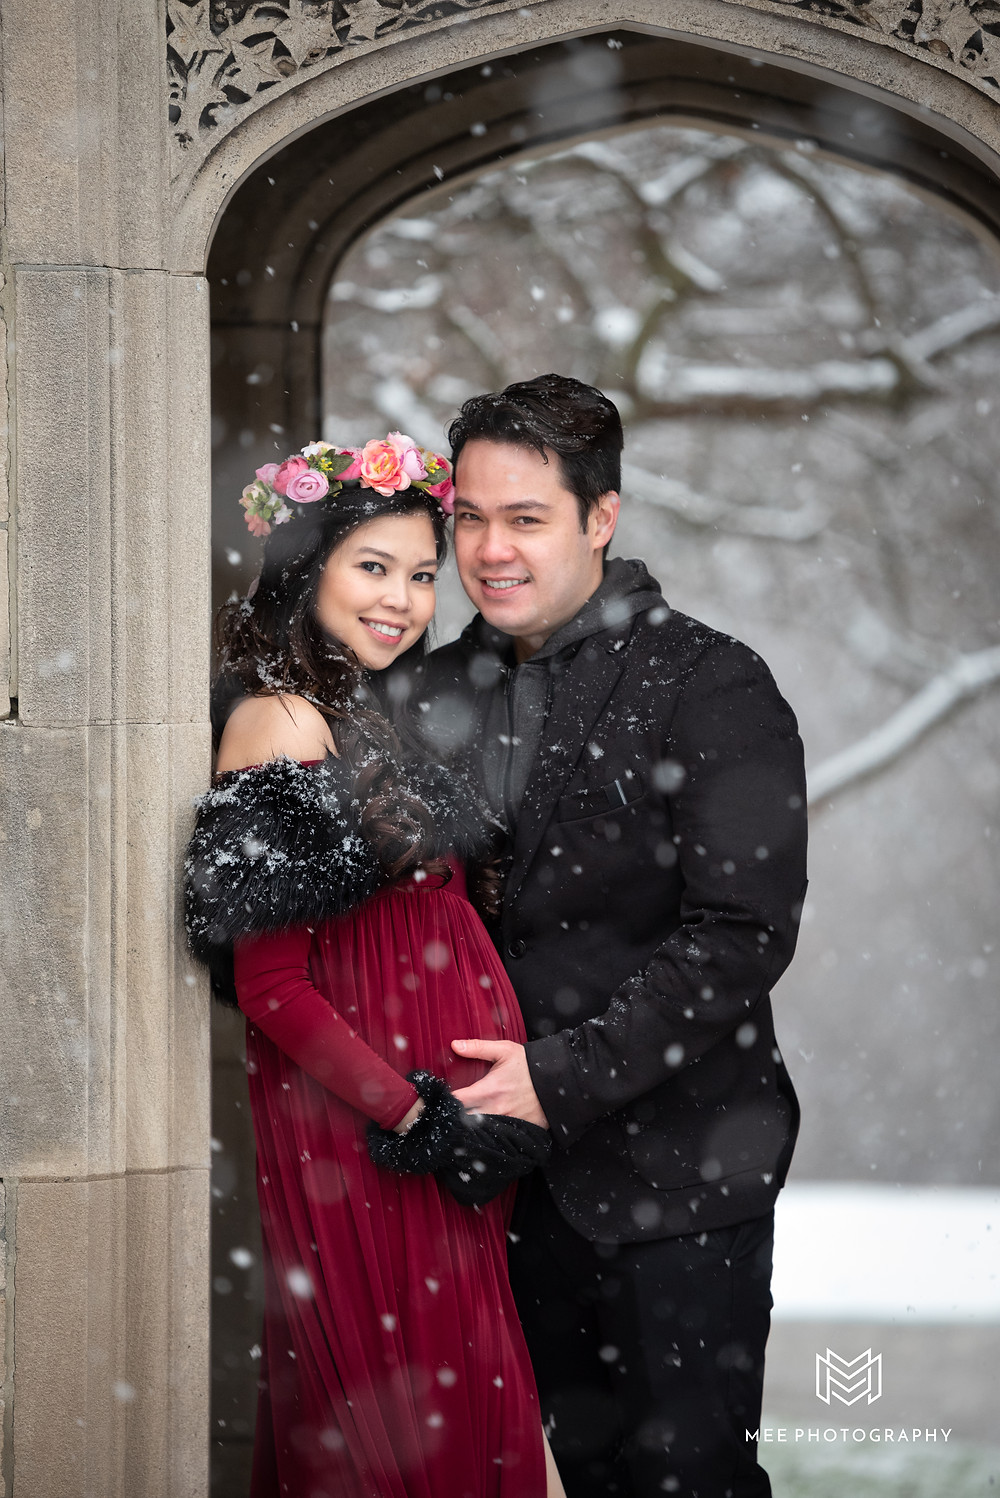 Winter maternity photoshoot ideas in red dress and flower crown